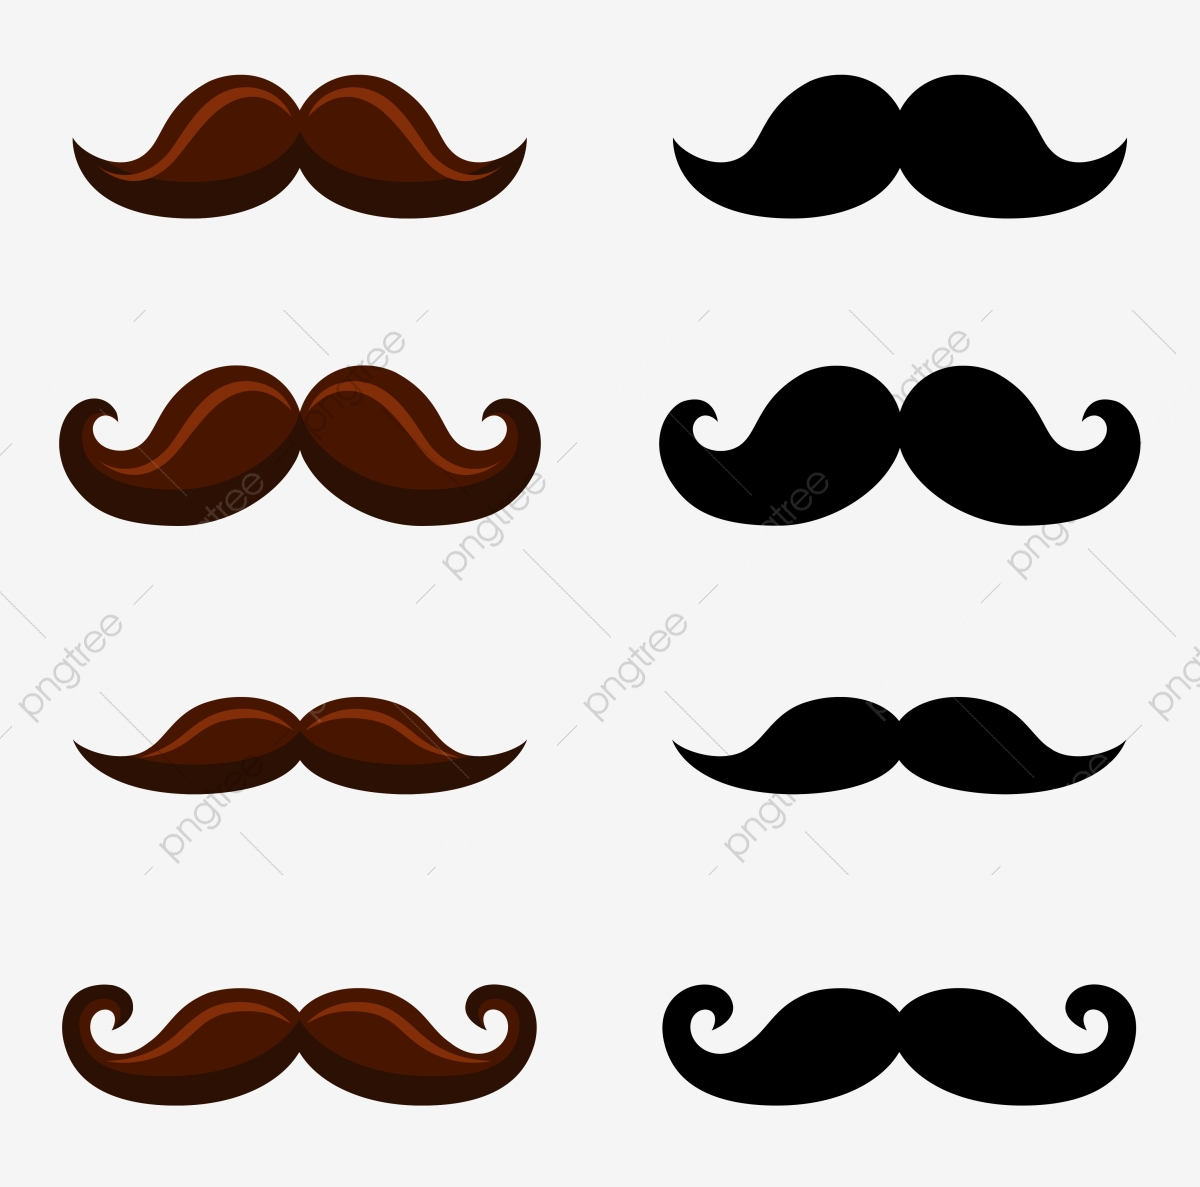 hight resolution of commercial use resource upgrade to premium plan and get license authorization upgradenow moustaches collection